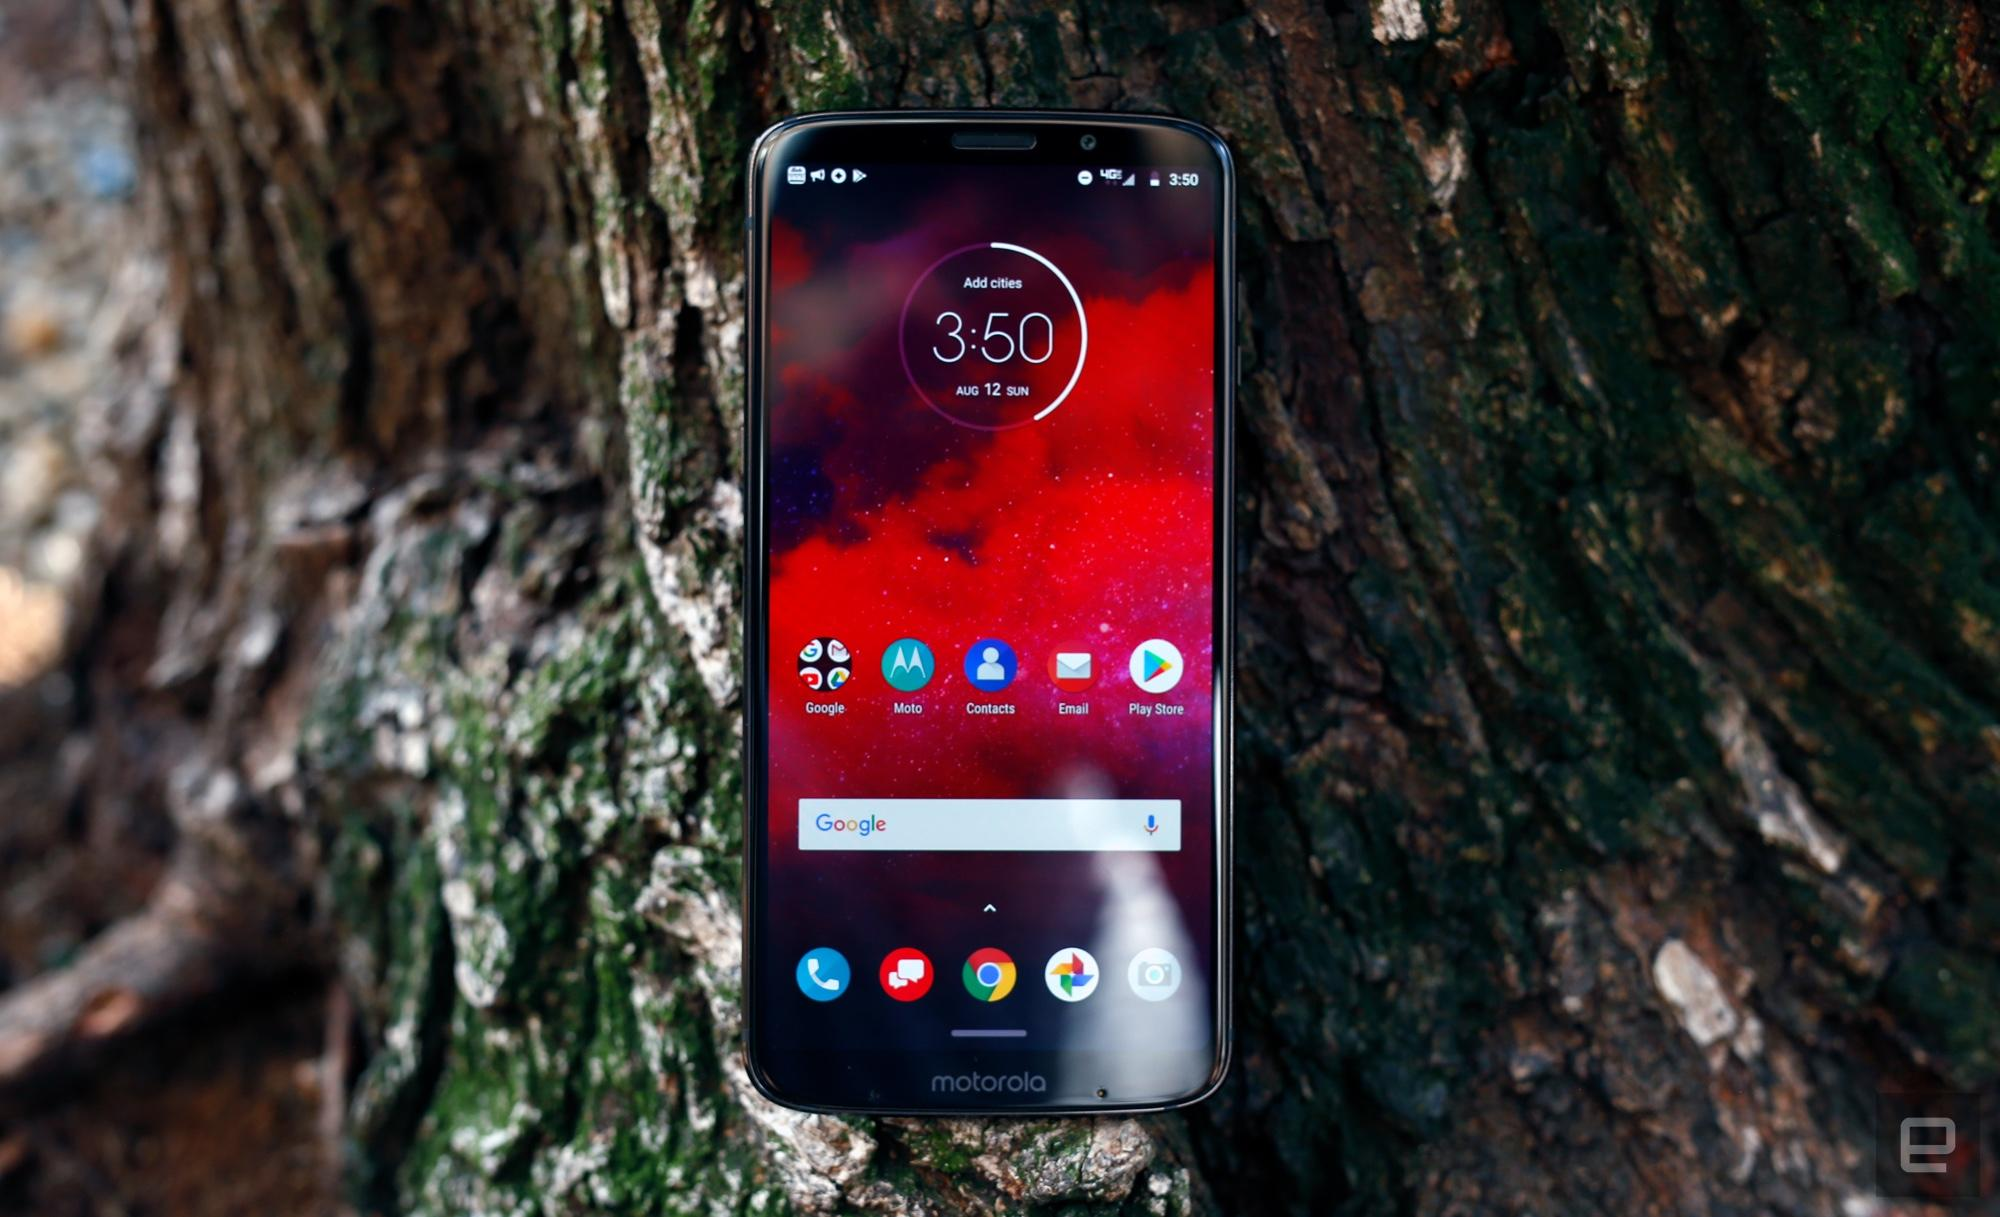 Moto Z3 review: When novel ideas get old